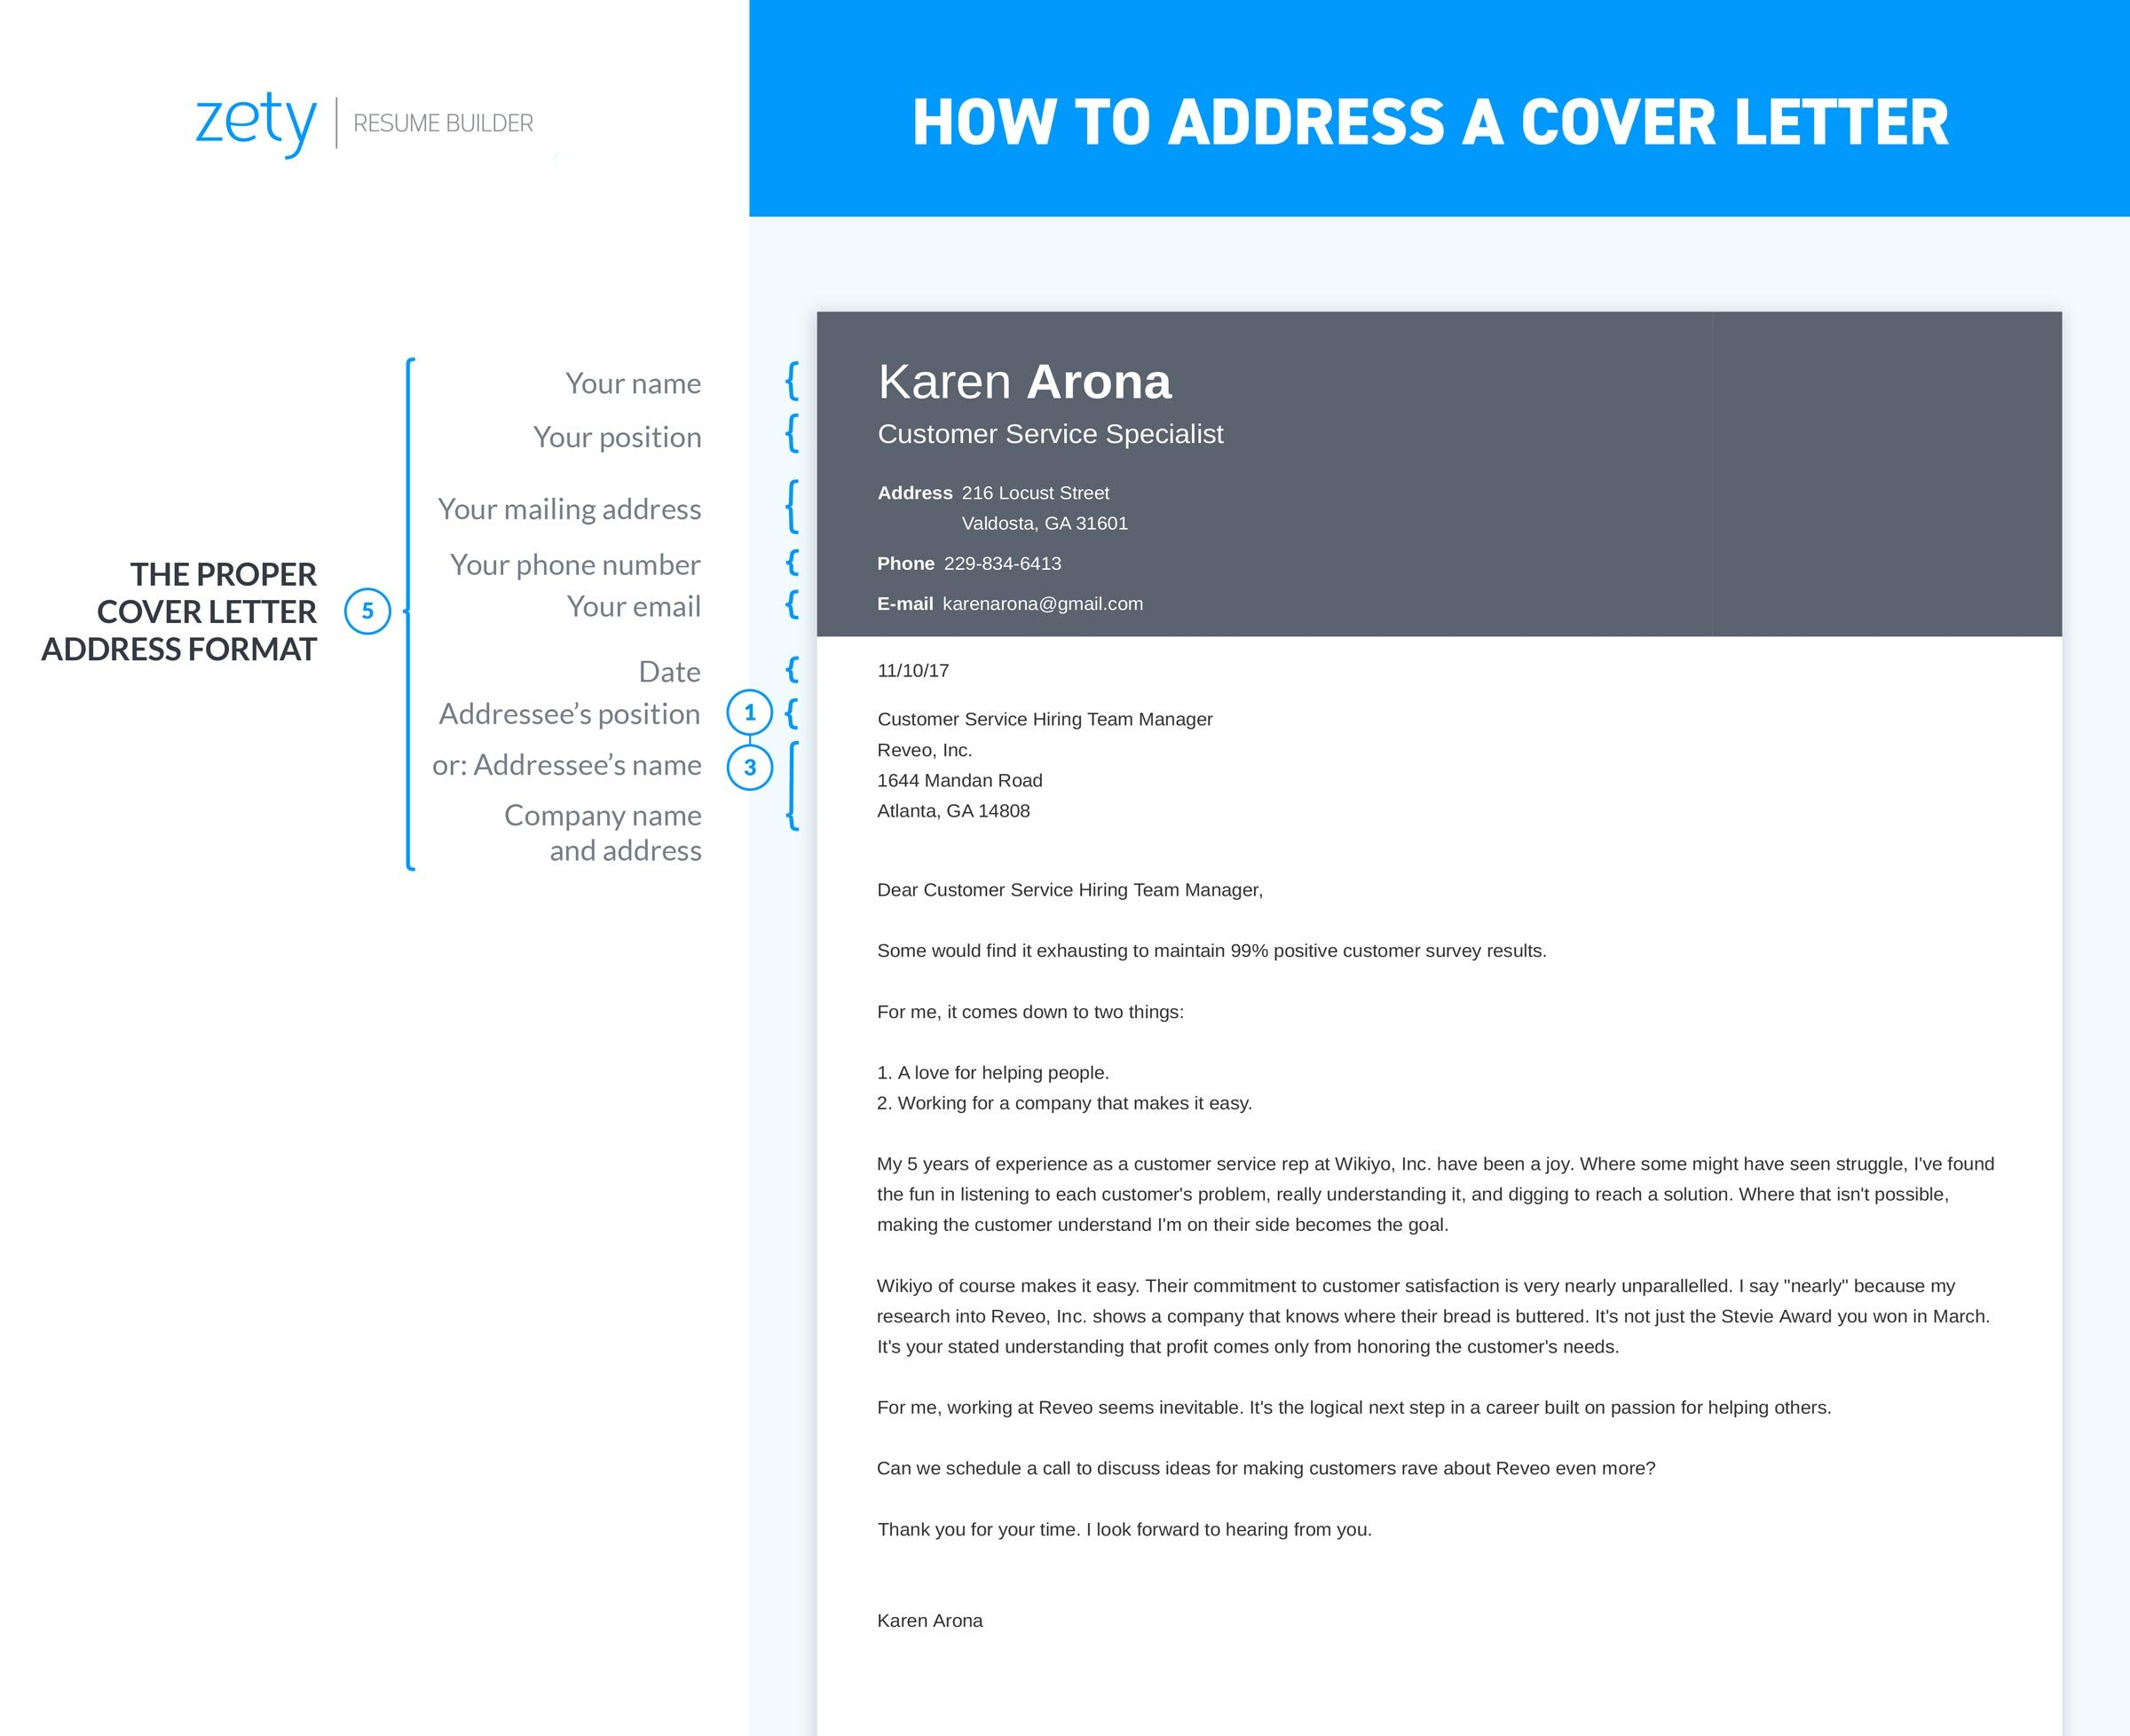 Do not contact current employer cover letter